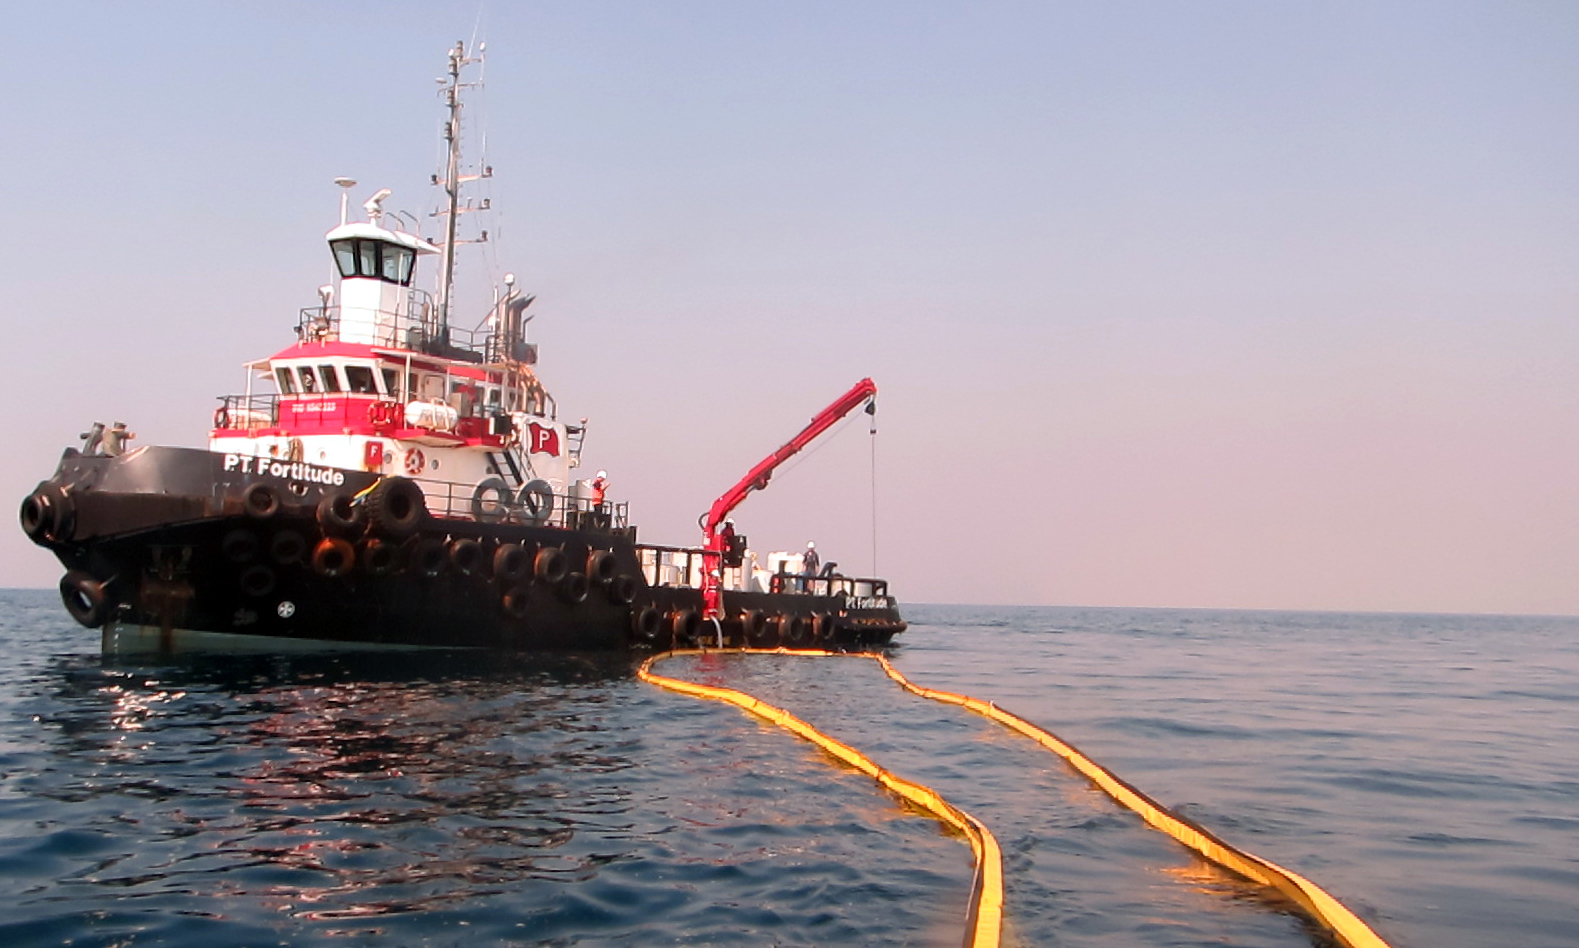 A tug boat is picture with boom lowered into the water